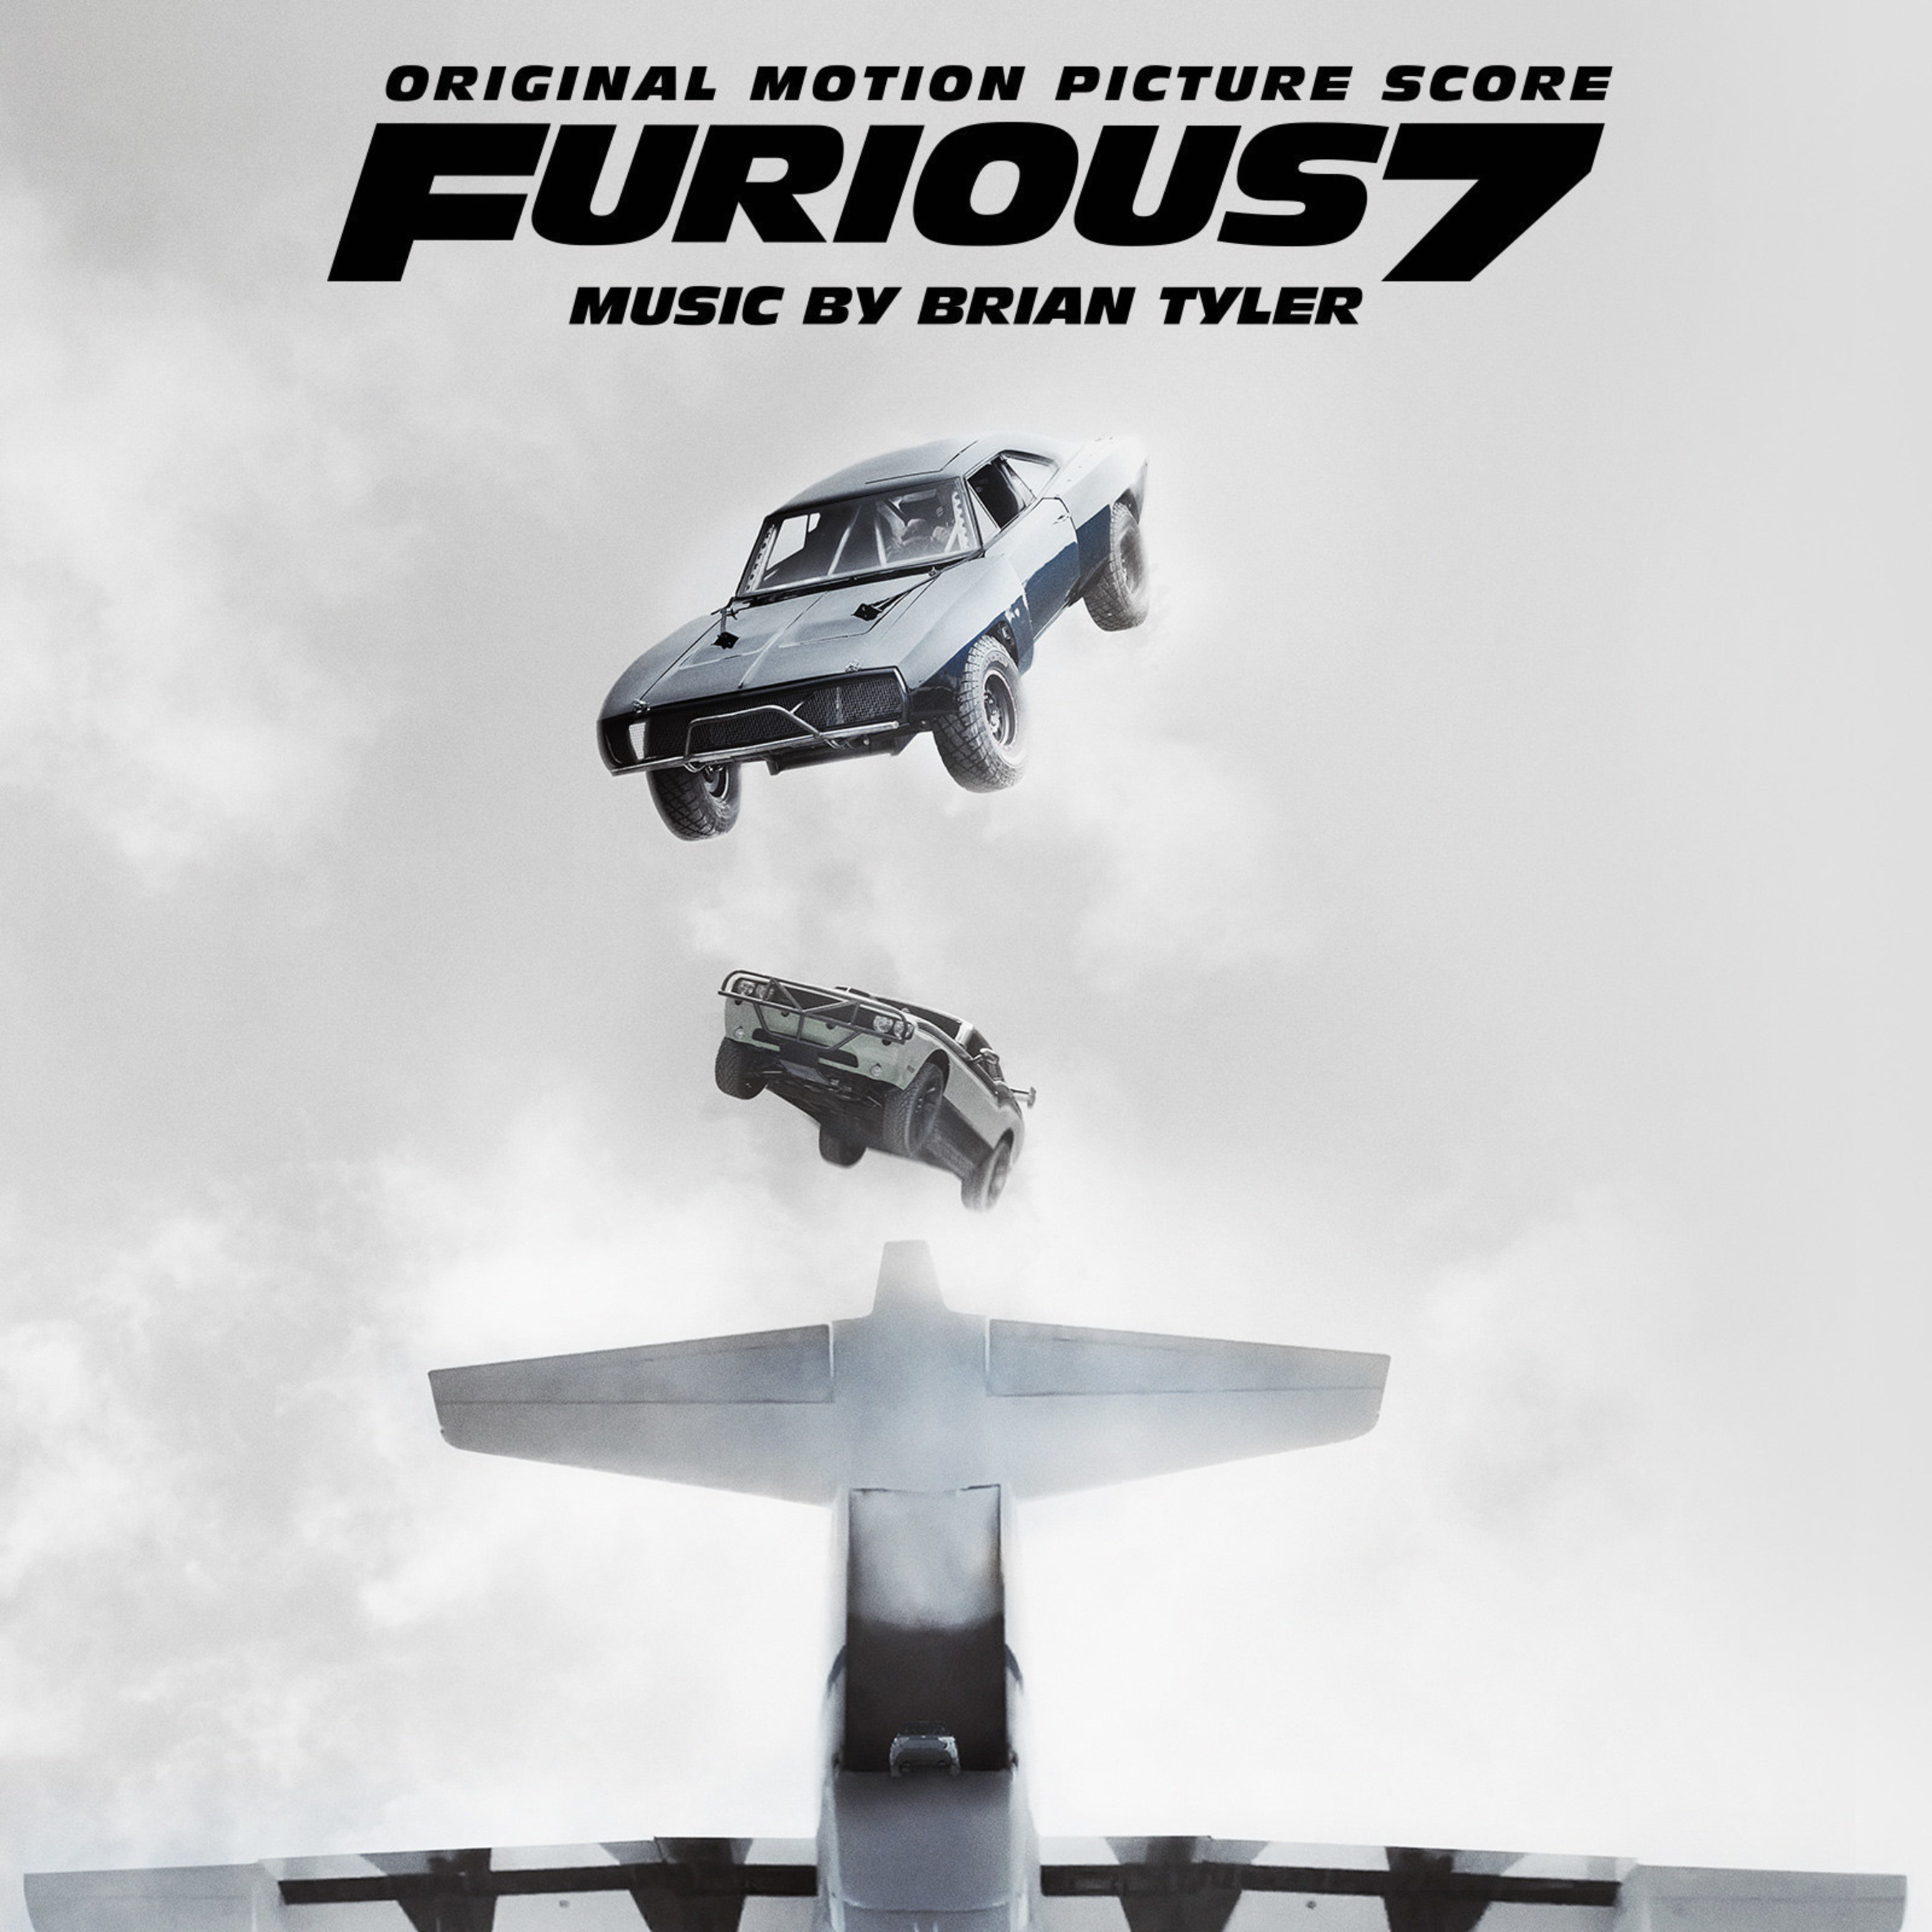 Furious 7 Original Motion Picture Score Album To Be Released On Back Lot Music March 31st Featuring New Music By Composer Brian Tyler